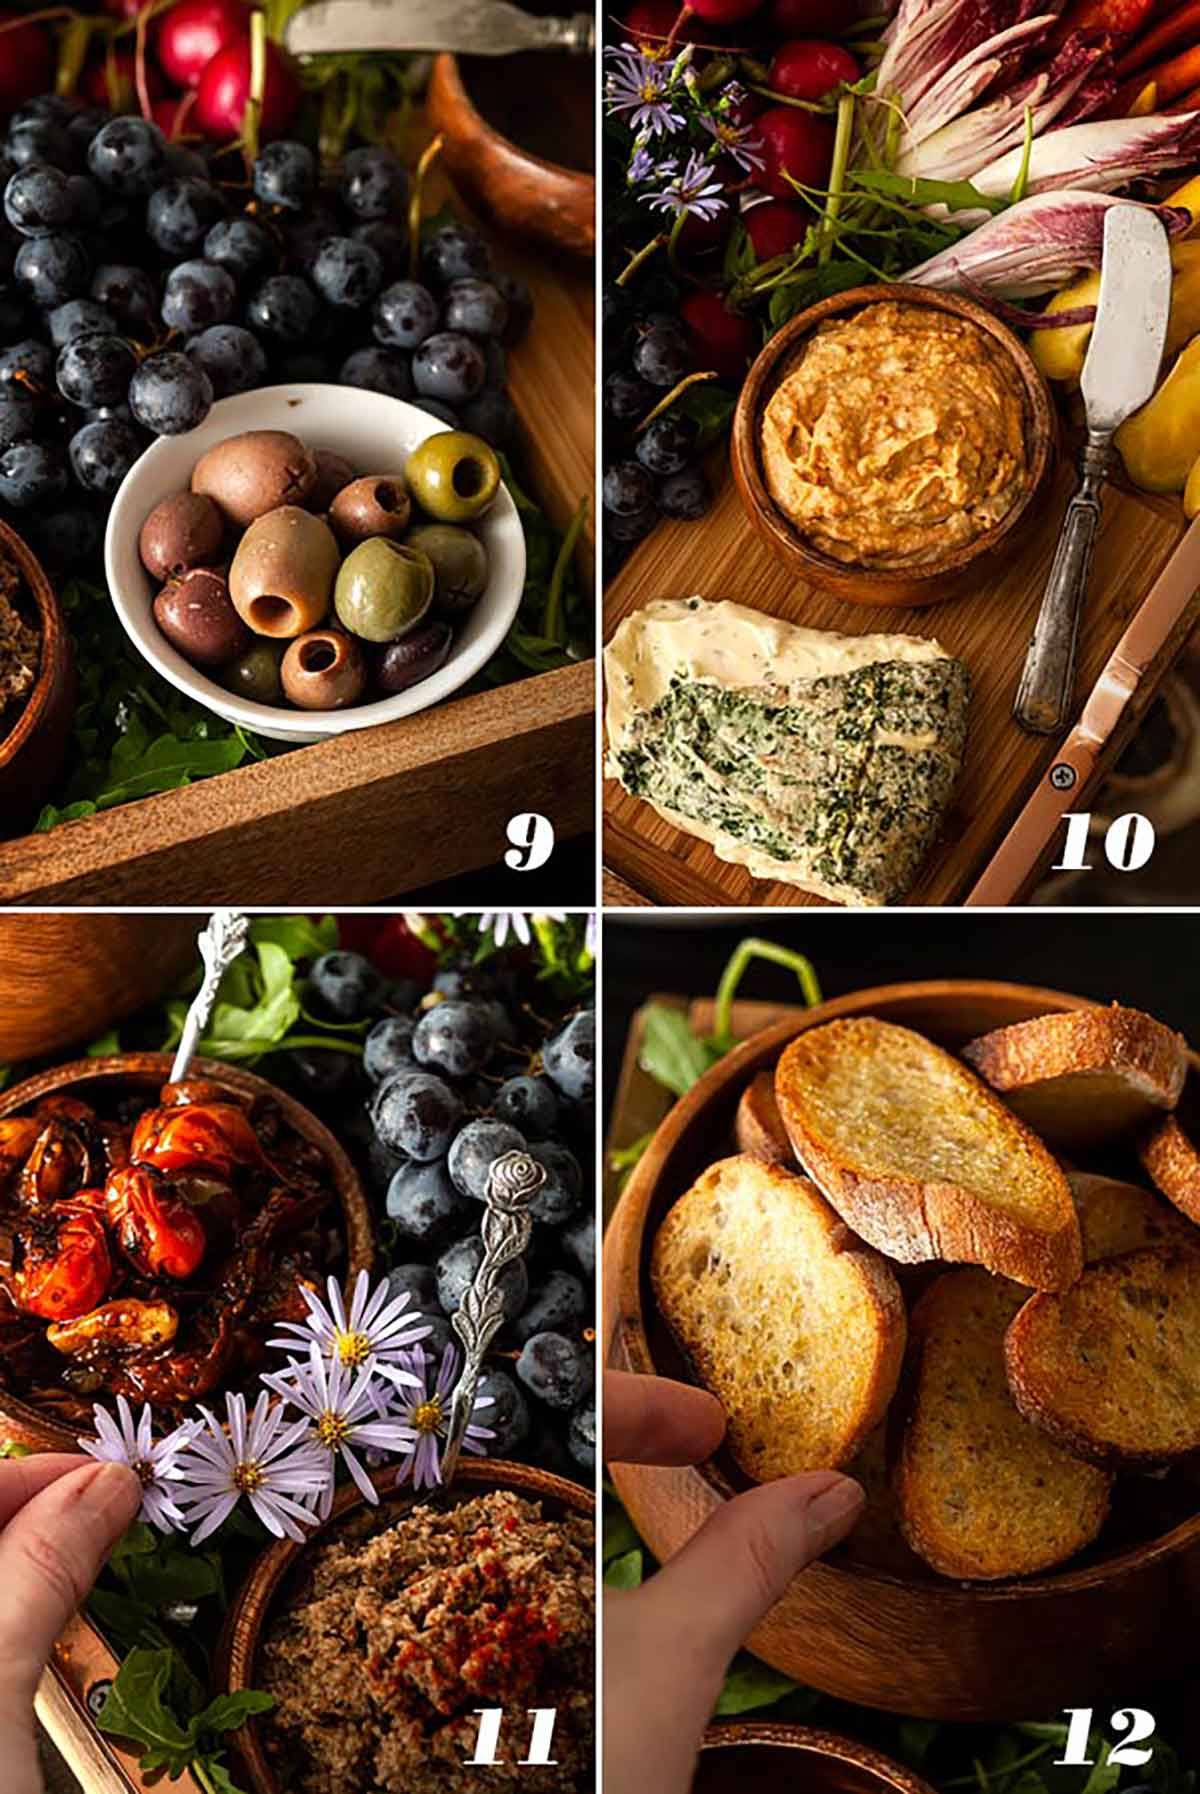 A step by step process showing how to assemble a cheese and crudités platter.